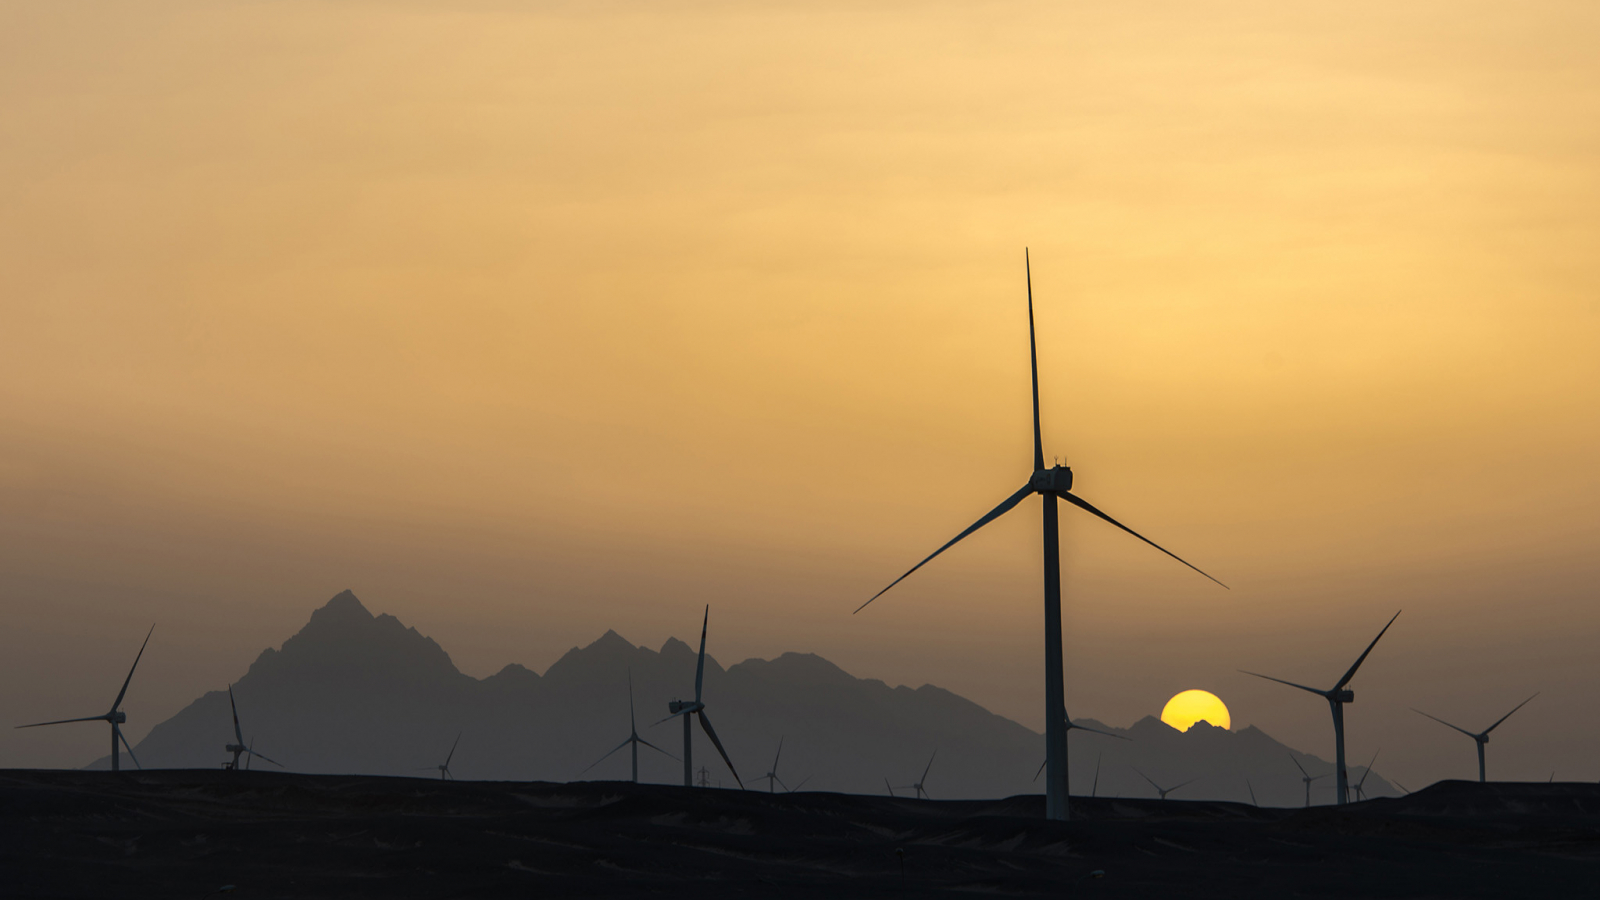 At twilight, the Gabal El-Zayt windfarm takes on an enchanting  atmosphere